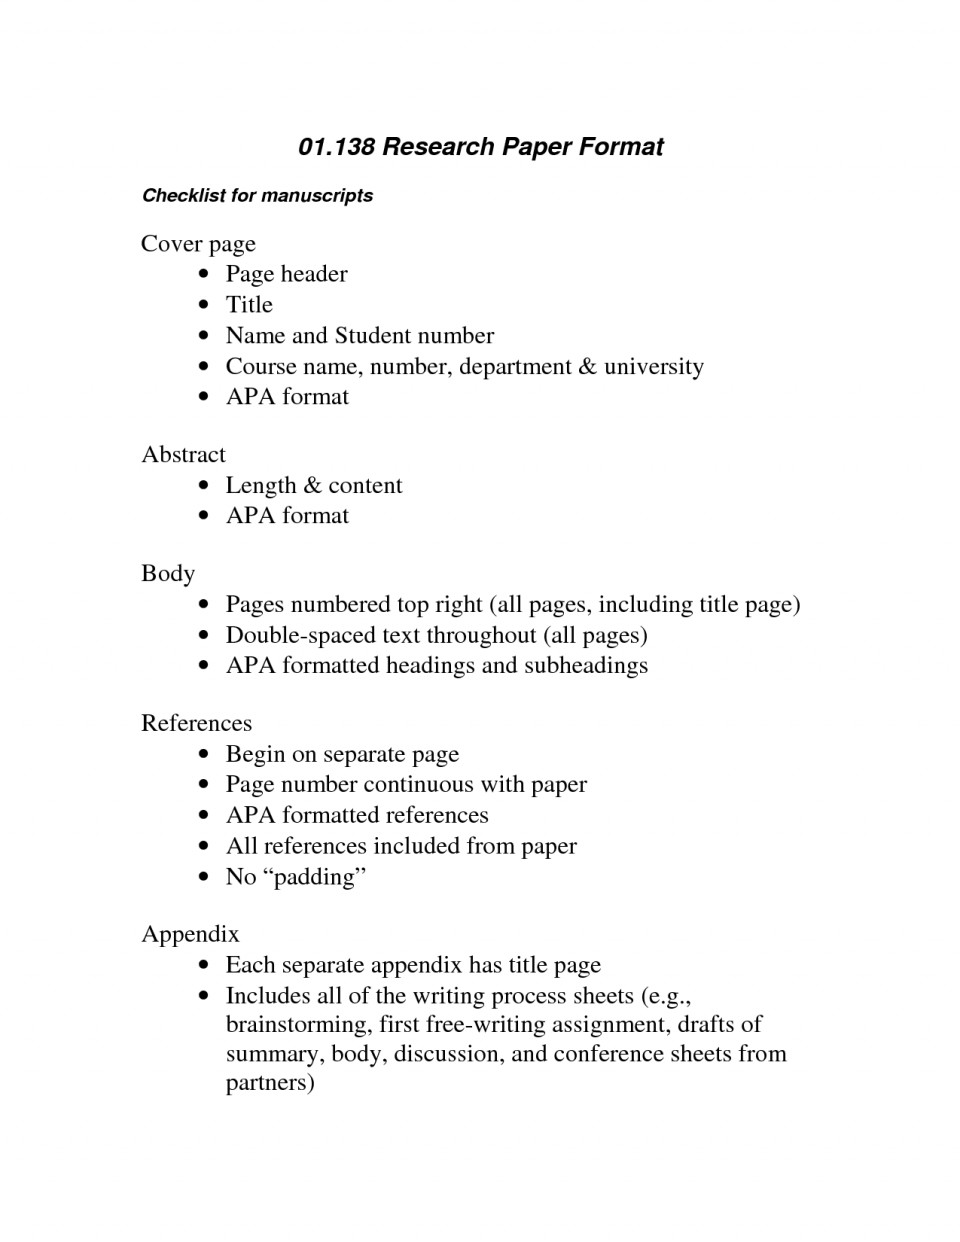 004 Outlines For Researchs Apa Awful Research Papers Outline Paper Style Examples Sample 960